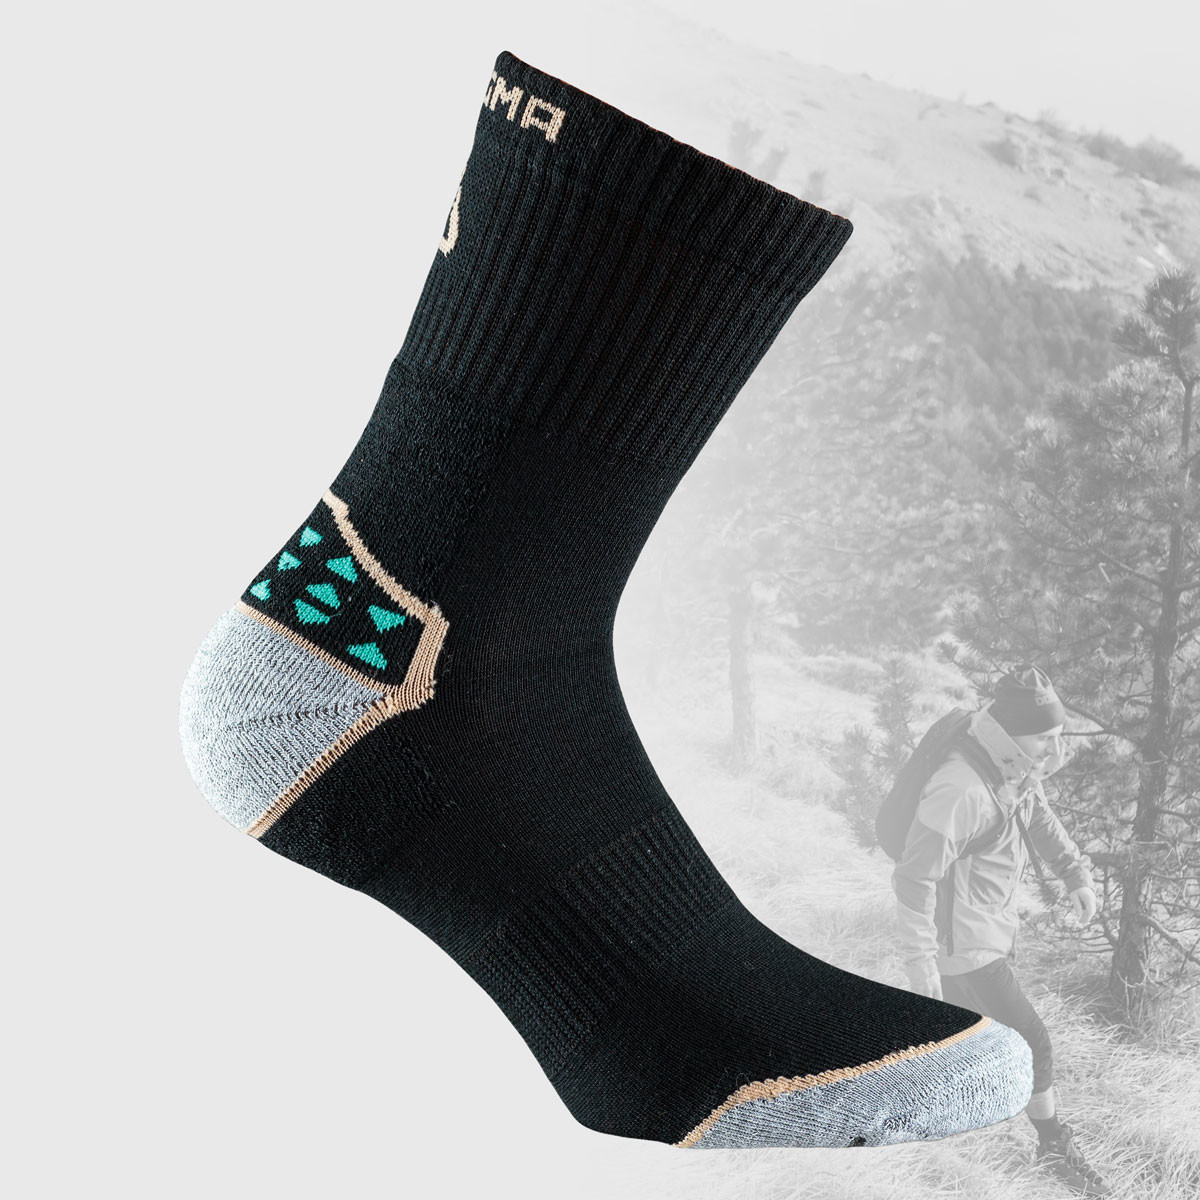 black hiking socks with small colored details